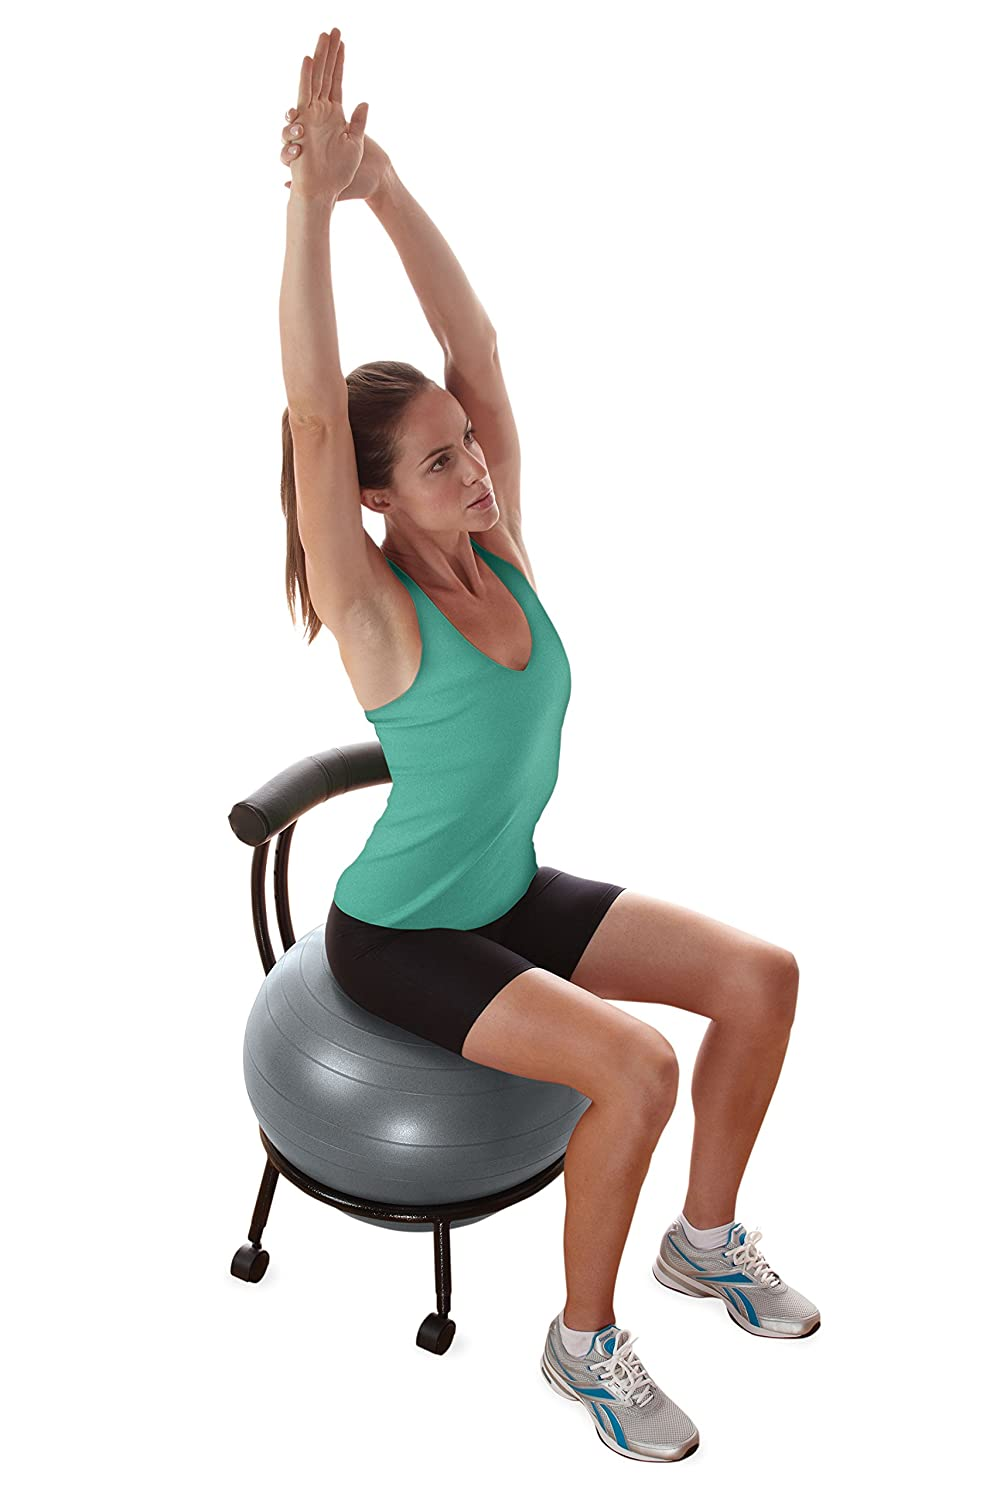 Stability Ball Desk Chair With 55cm Yoga Ball Inflation Pump And Exercise Guide For Home Or Office Gaiam Adjustable Custom Fit Balance Ball Chair Exercise Ball Chairs Sports Outdoors